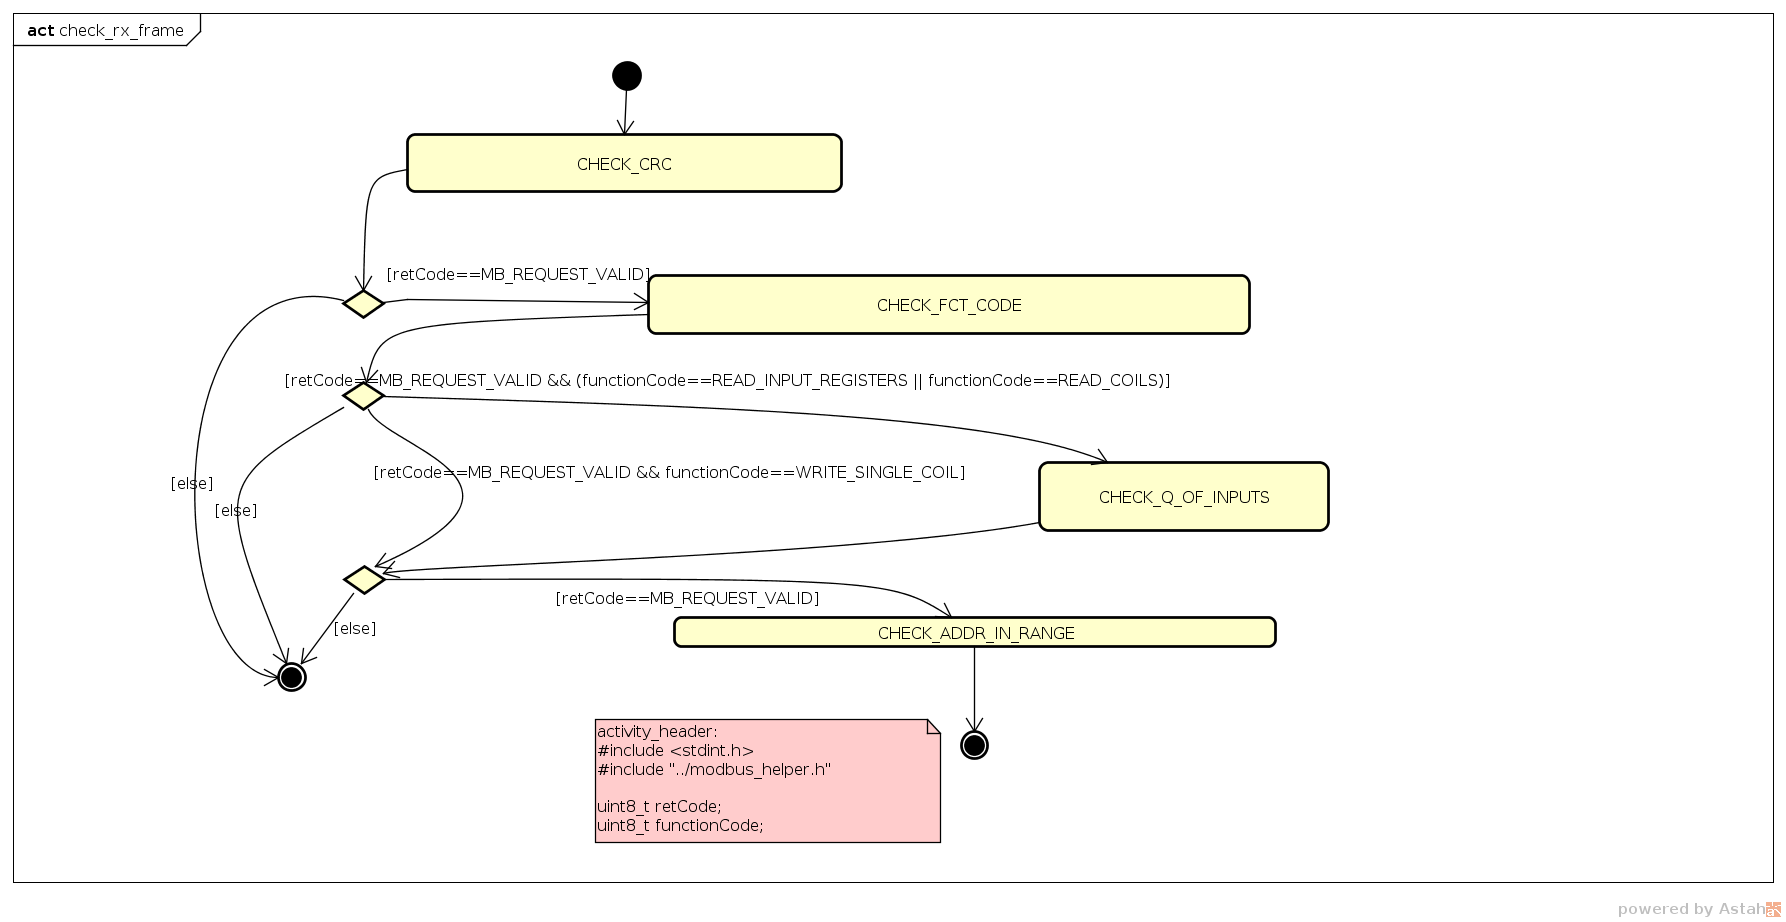 Building A Modbusrtu Server With State Machines Activity Diagrams Additionally Uml Machine Diagram On Tool It Is Matter Of Taste If This Should Also Be Made Explicit In The